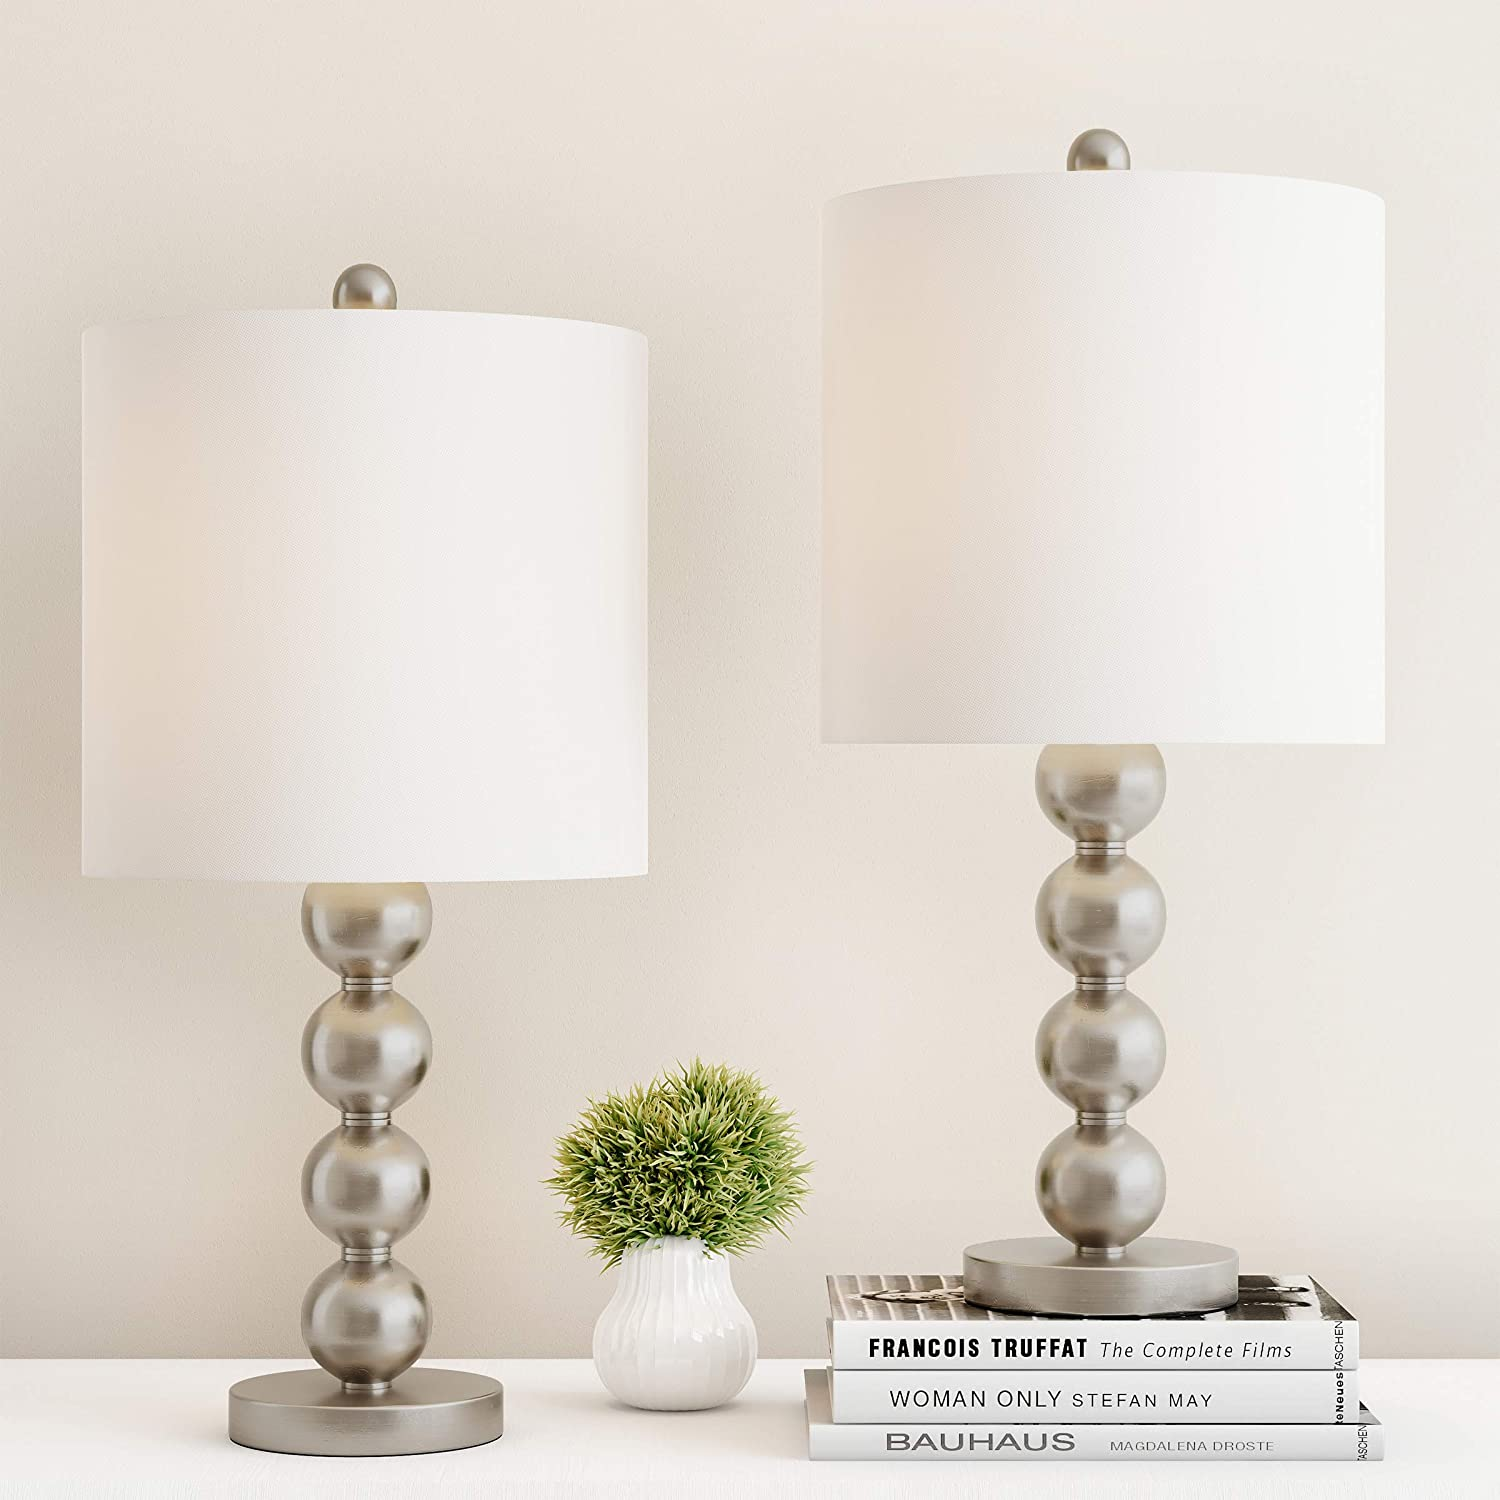 Lavish Home Table Lamps – Set of 2 Matching Modern Stacked Balls Lighting Energy-Efficient LED Bulbs Included